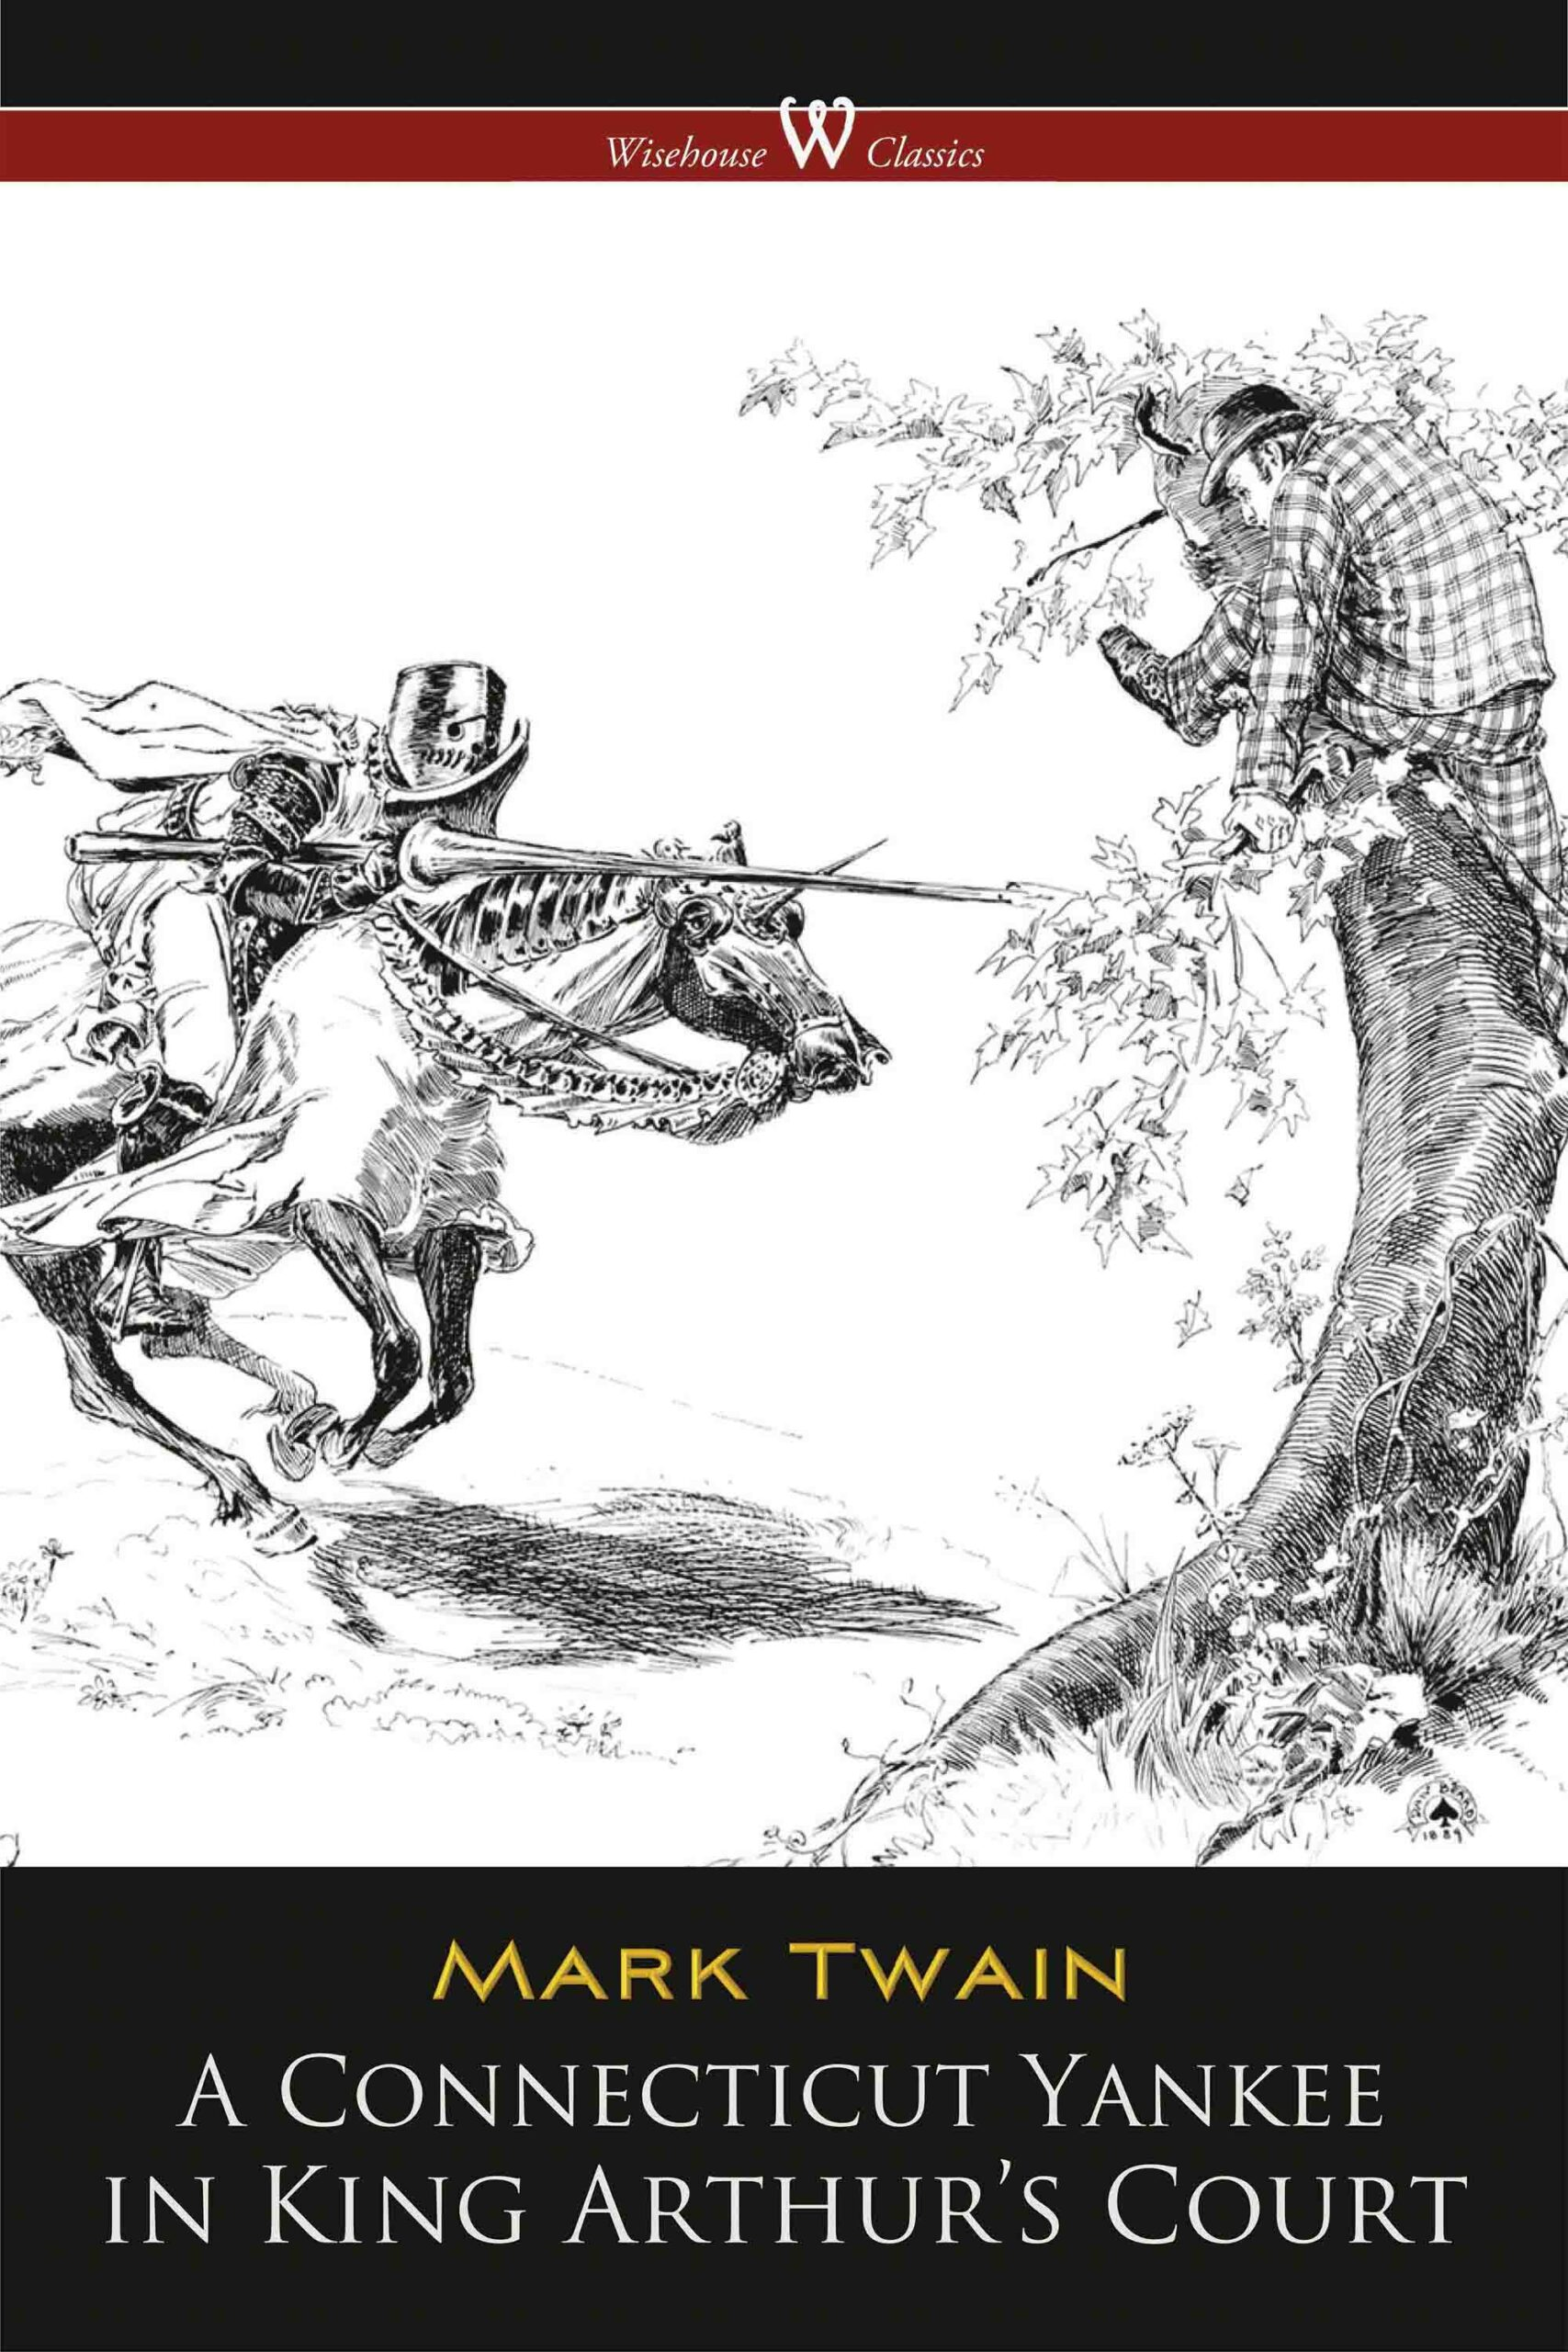 A Connecticut Yankee in King Arthur's Court (Wisehouse Classics Edition)